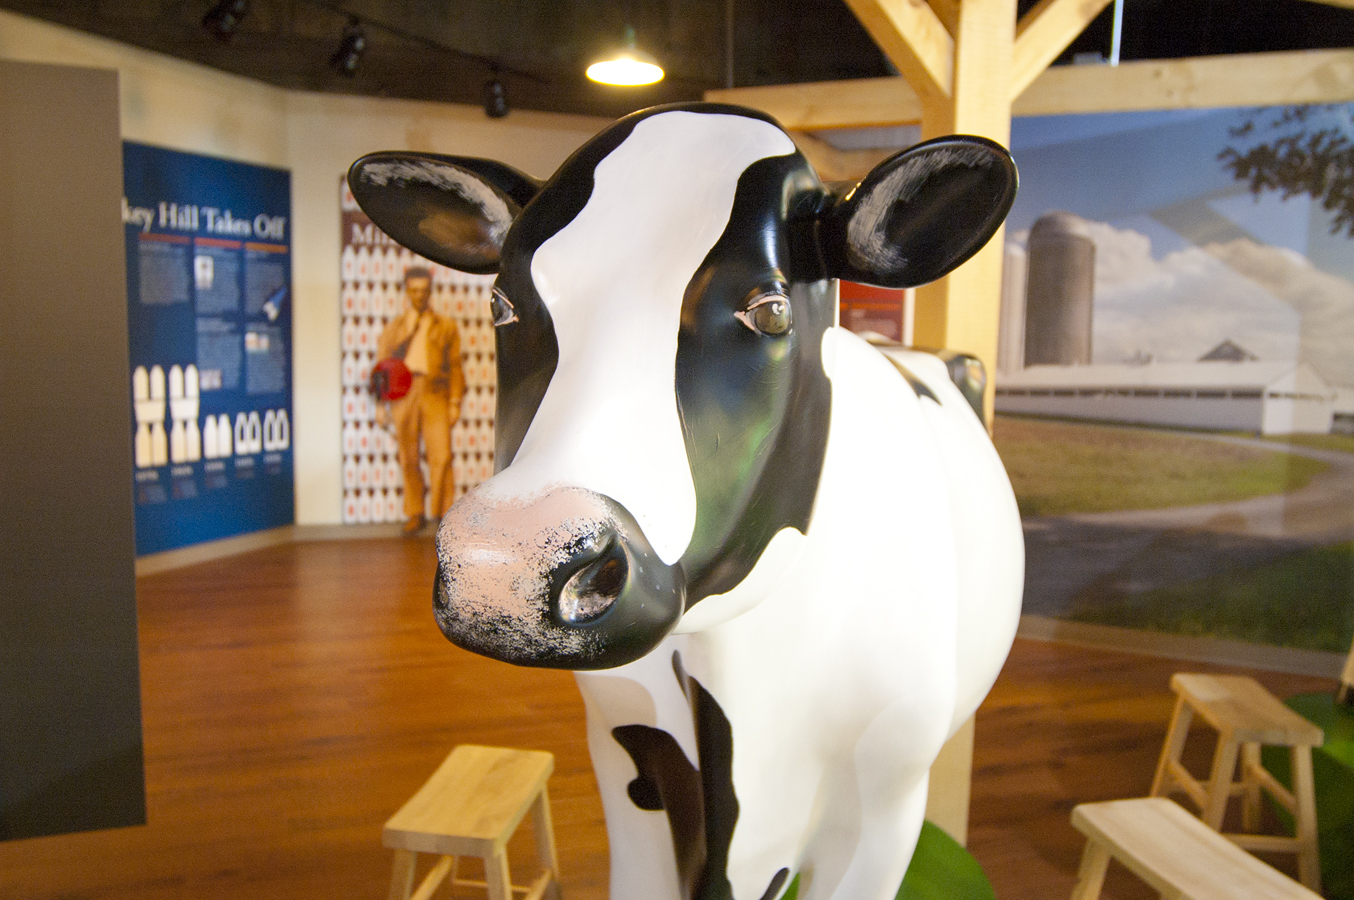 Milking Cow Exhibit. Turkey Hill Experience